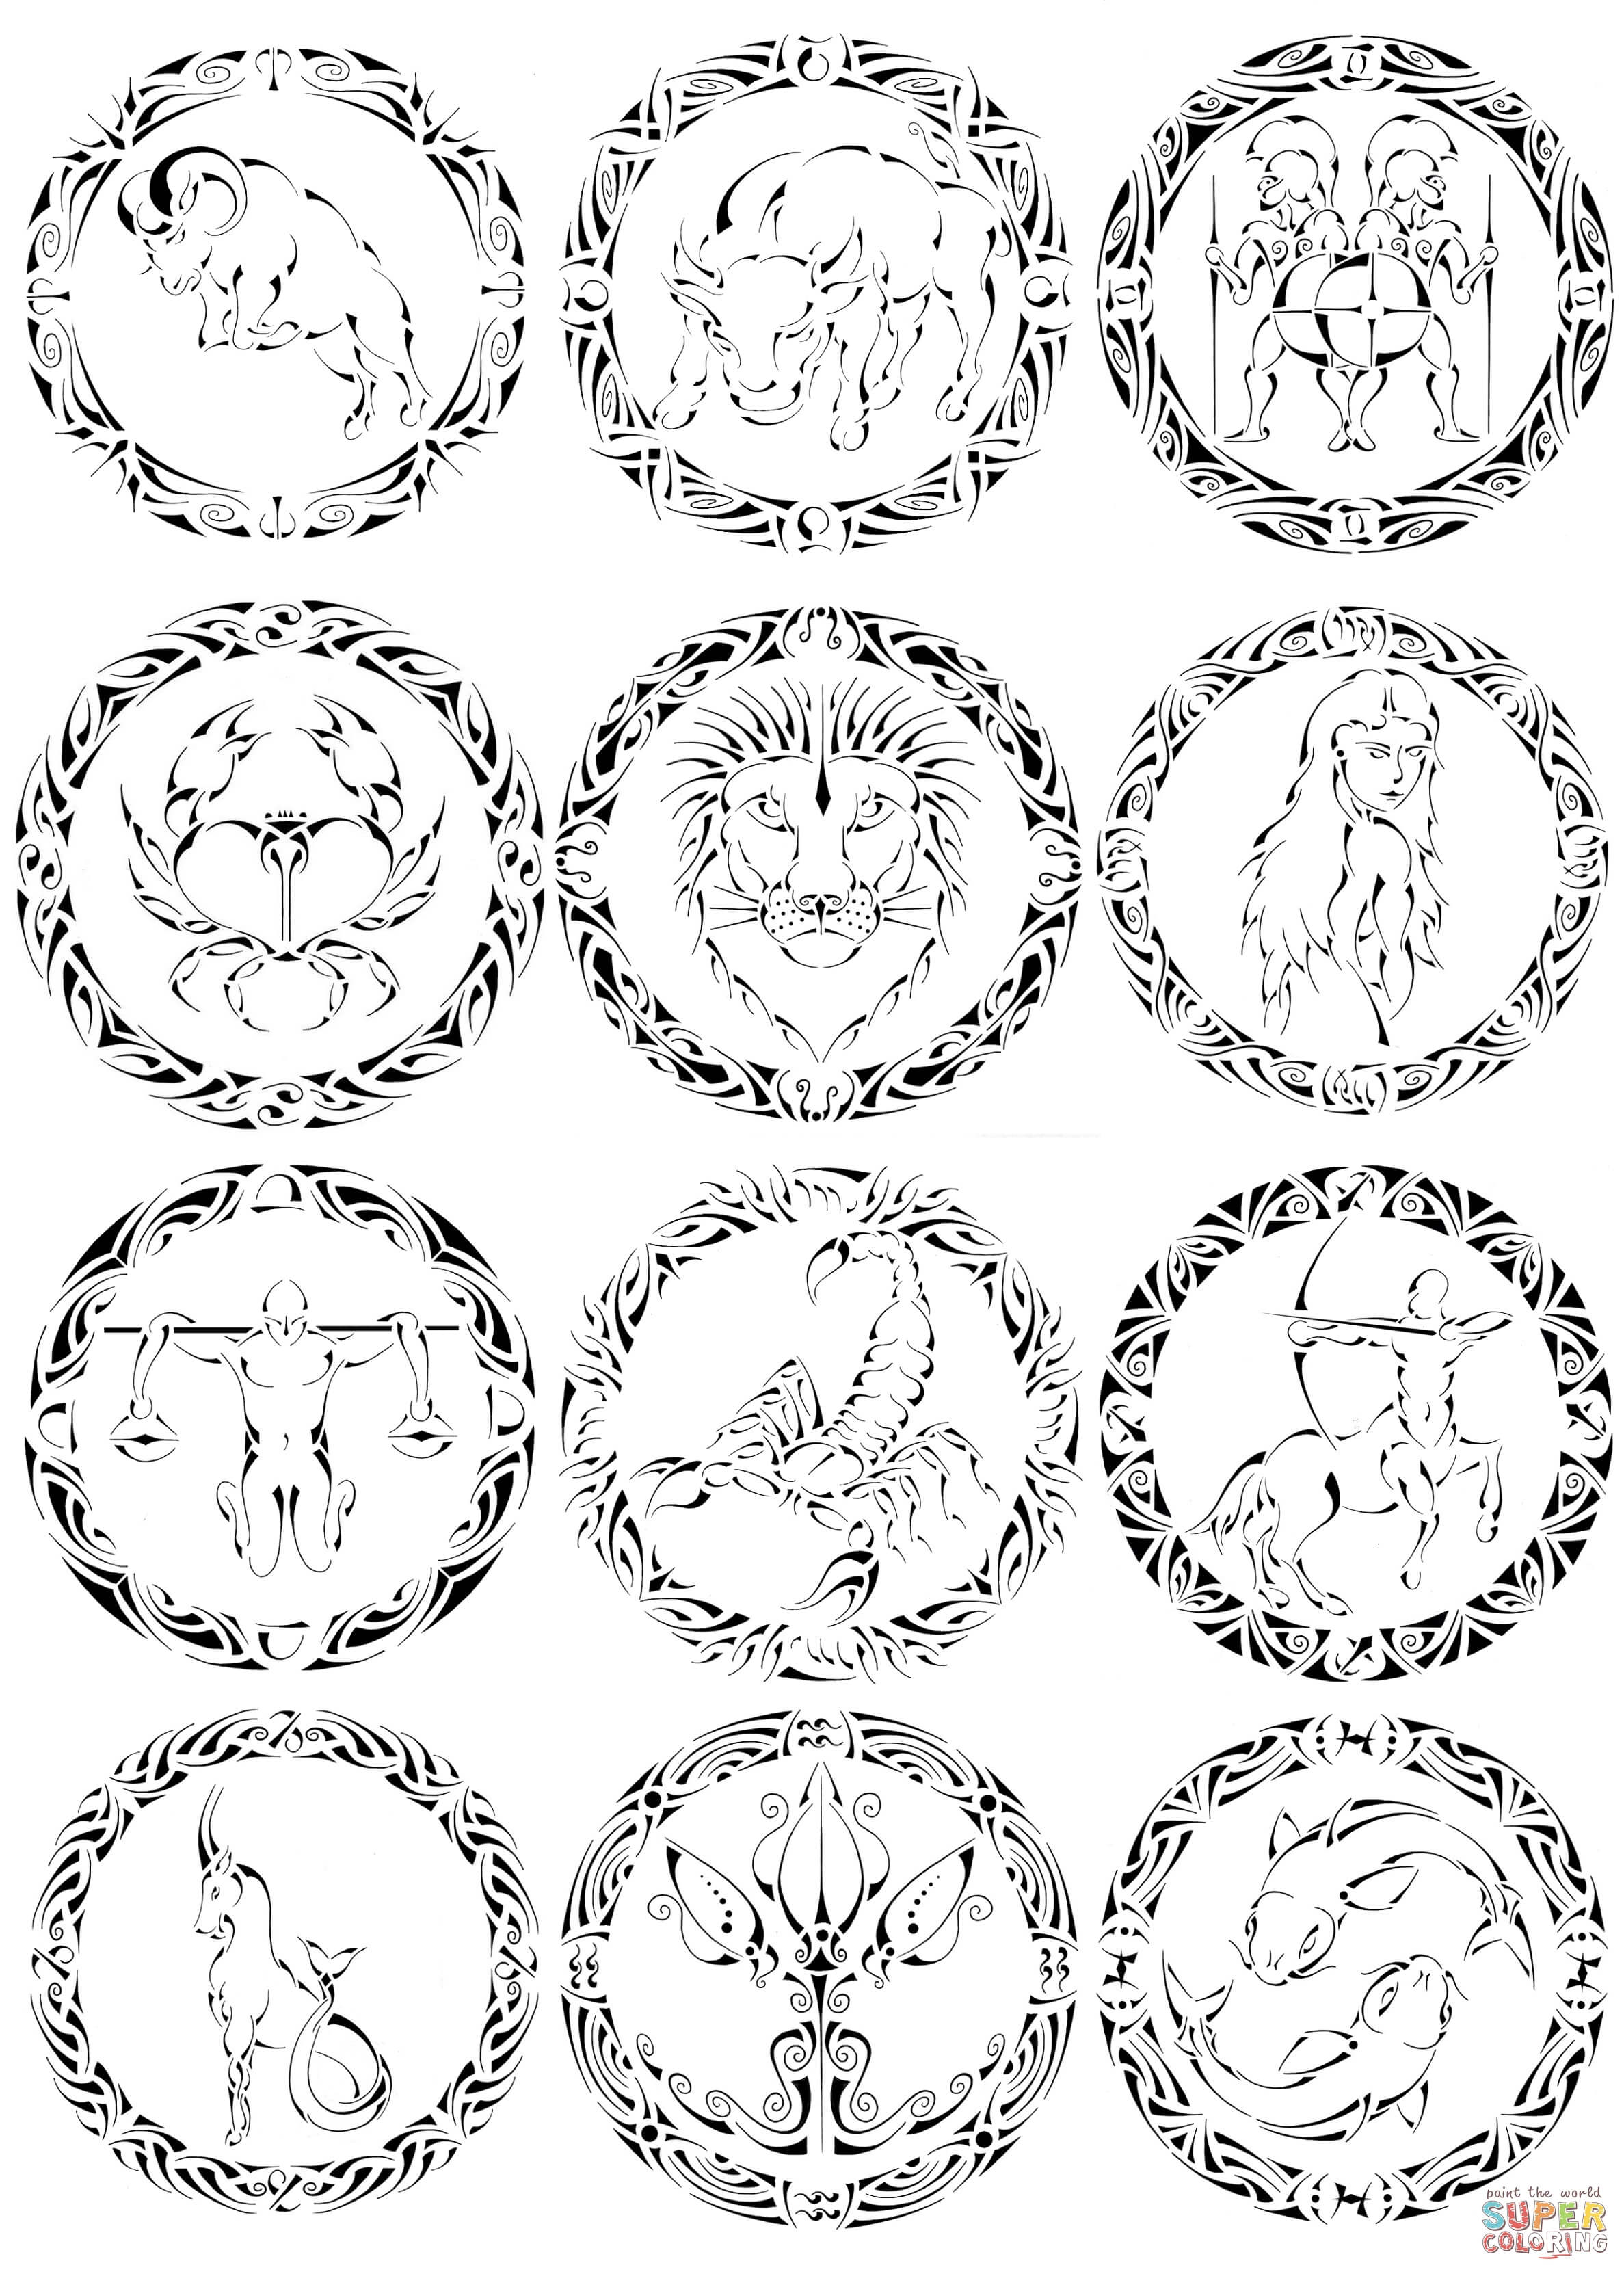 Zodiac Drawing At Getdrawings Free For Personal Use Zodiac